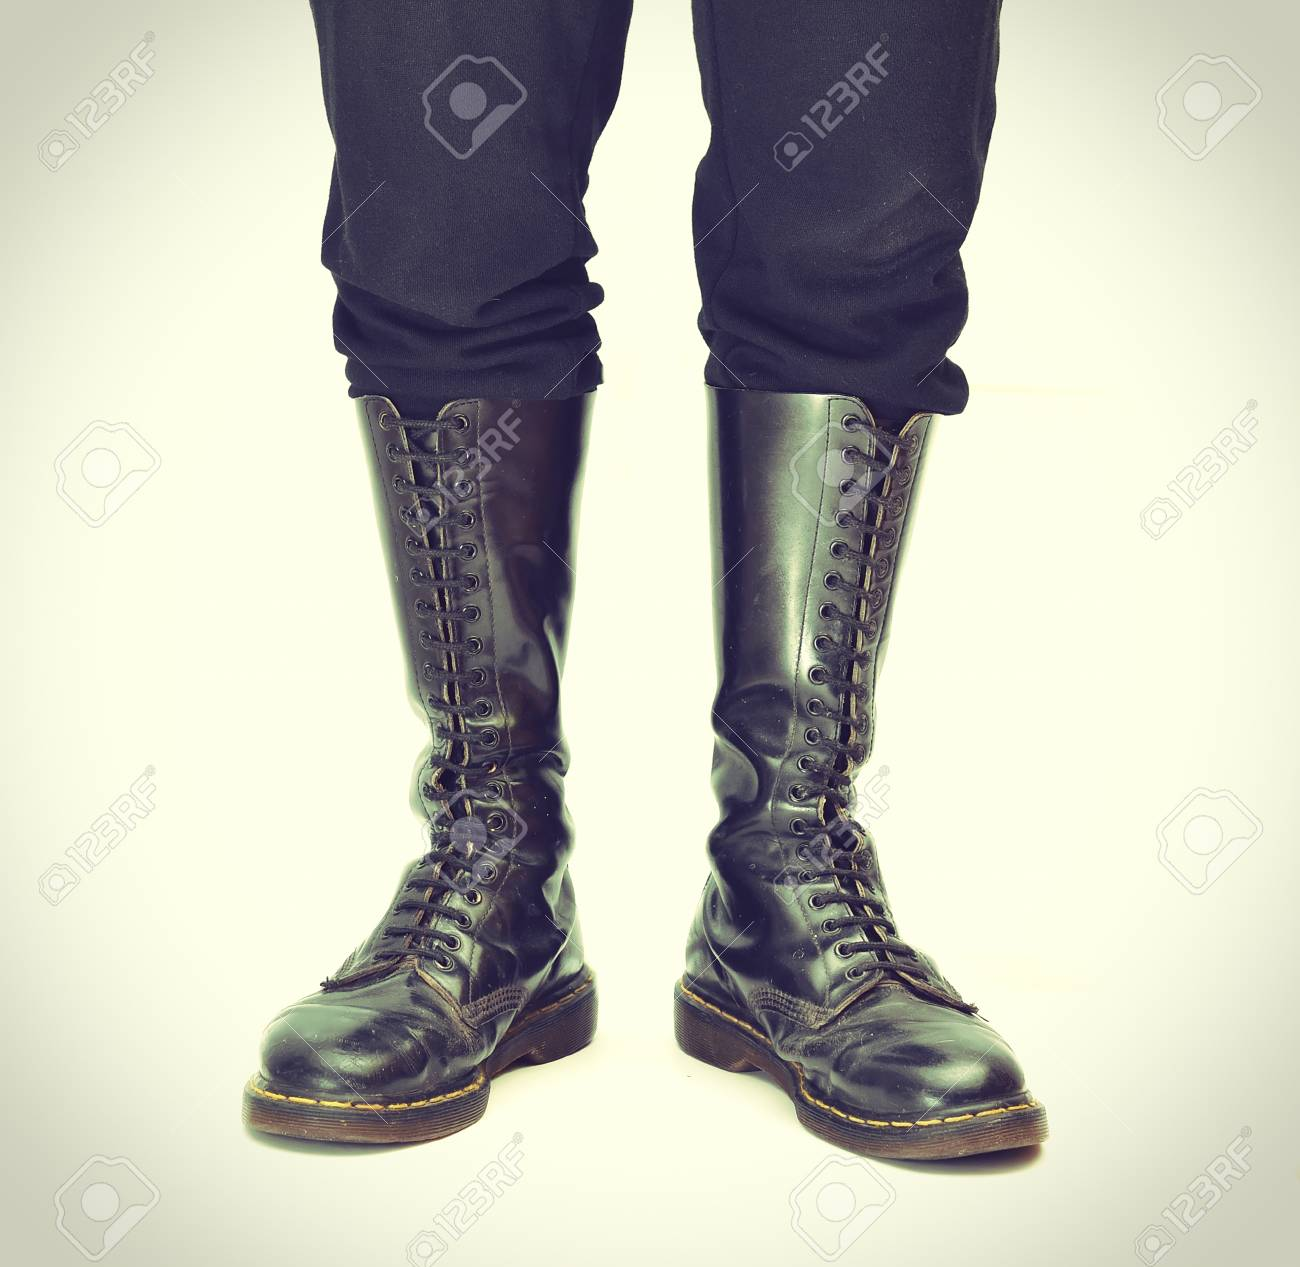 552169cec6a A pair of old and rugged men's/unisex knee-high black 20-eyelet..